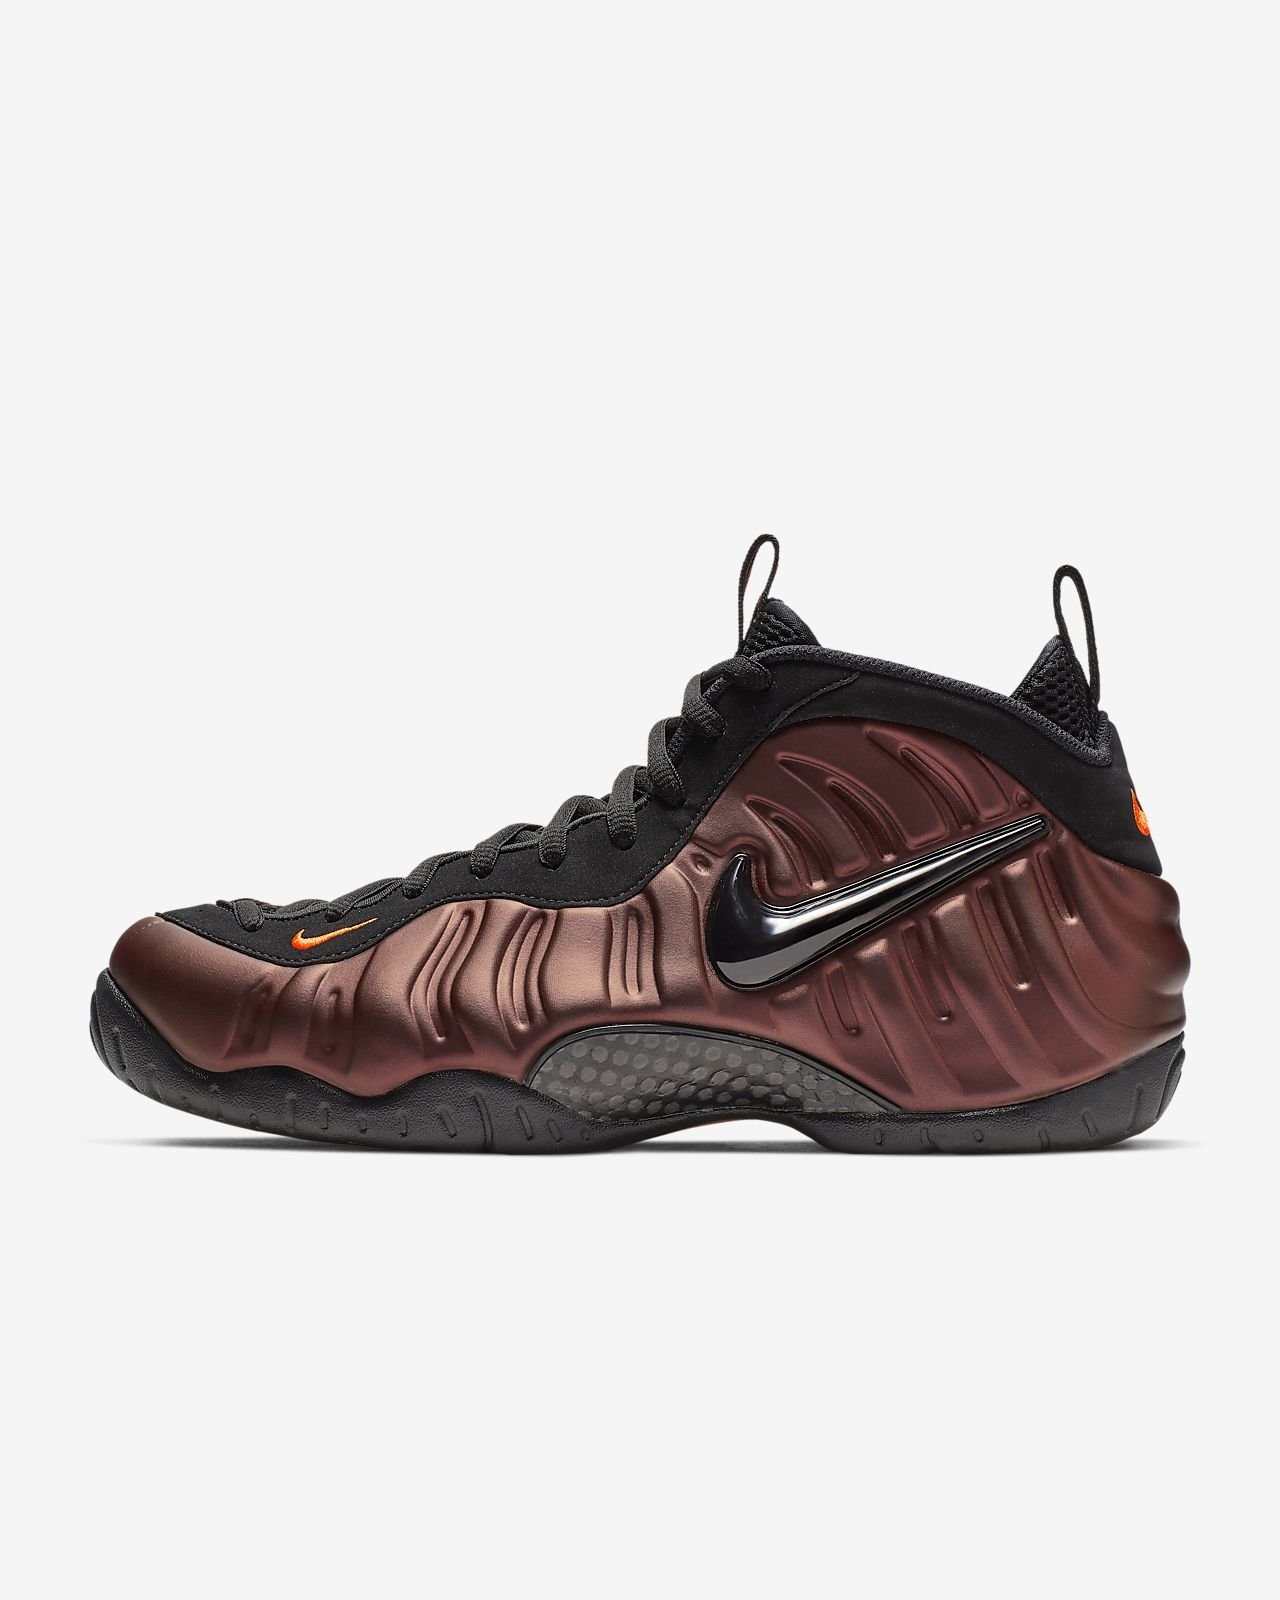 3f32078a4da Nike Air Foamposite Pro Men s Shoe. Nike.com ID